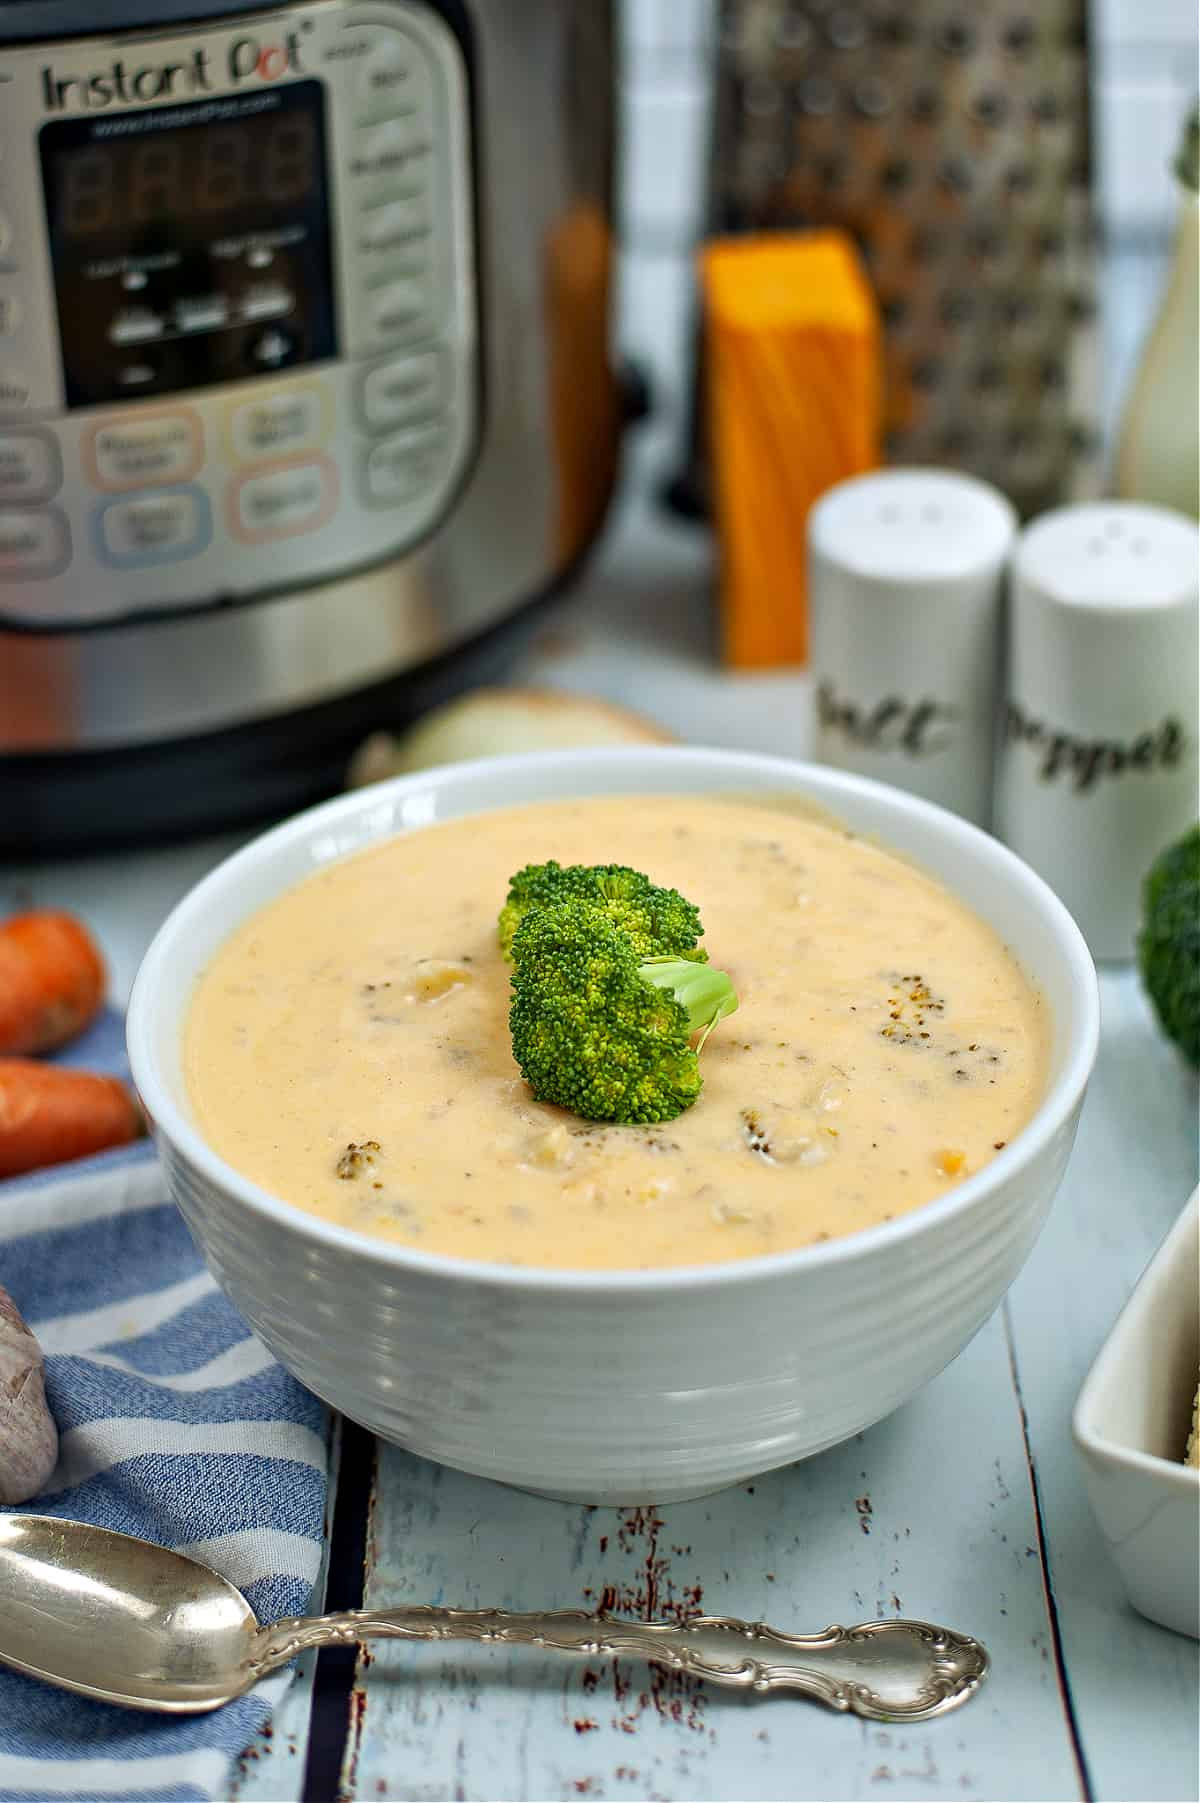 instant pot and bowl of broccoli cheddar soup